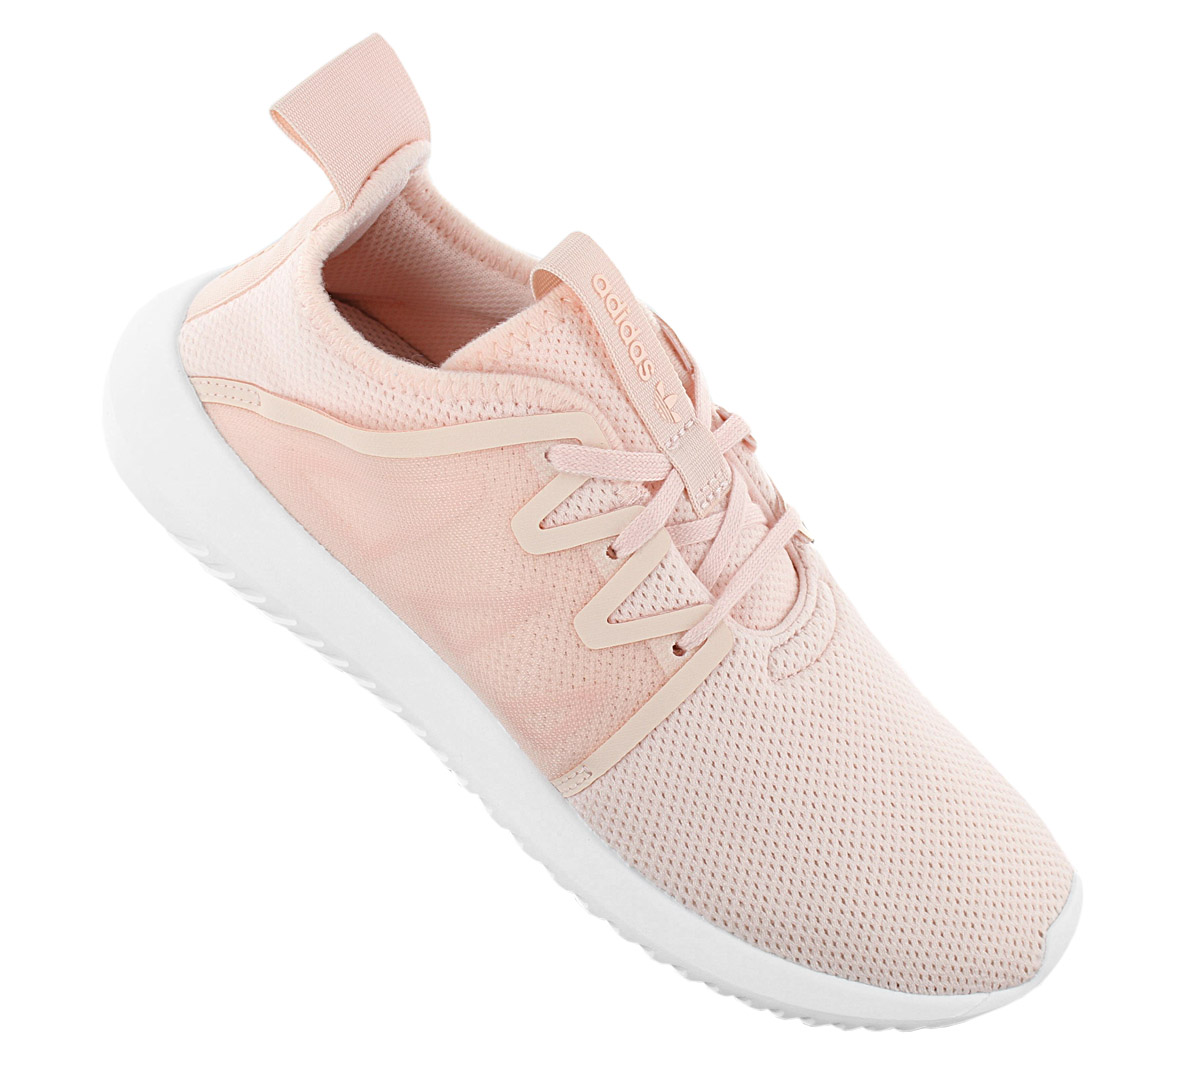 Details about Adidas Originals Tubular Viral 2 W Women's Sneaker Shoes BY2122 Pink Trainers